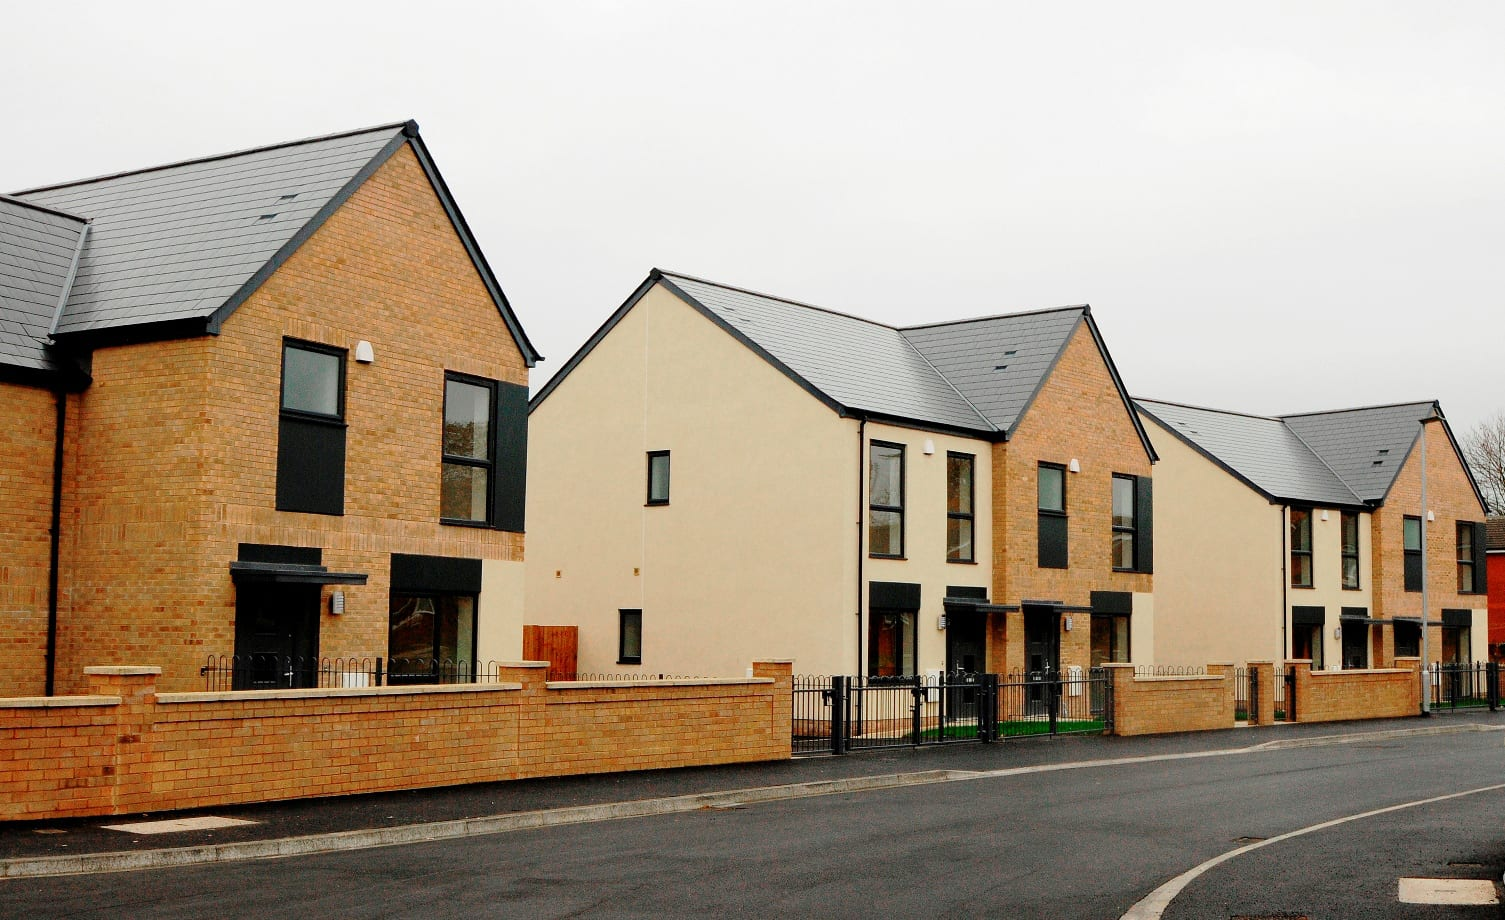 Popular - Yorkshire housing sorts out mould problem with envirovent